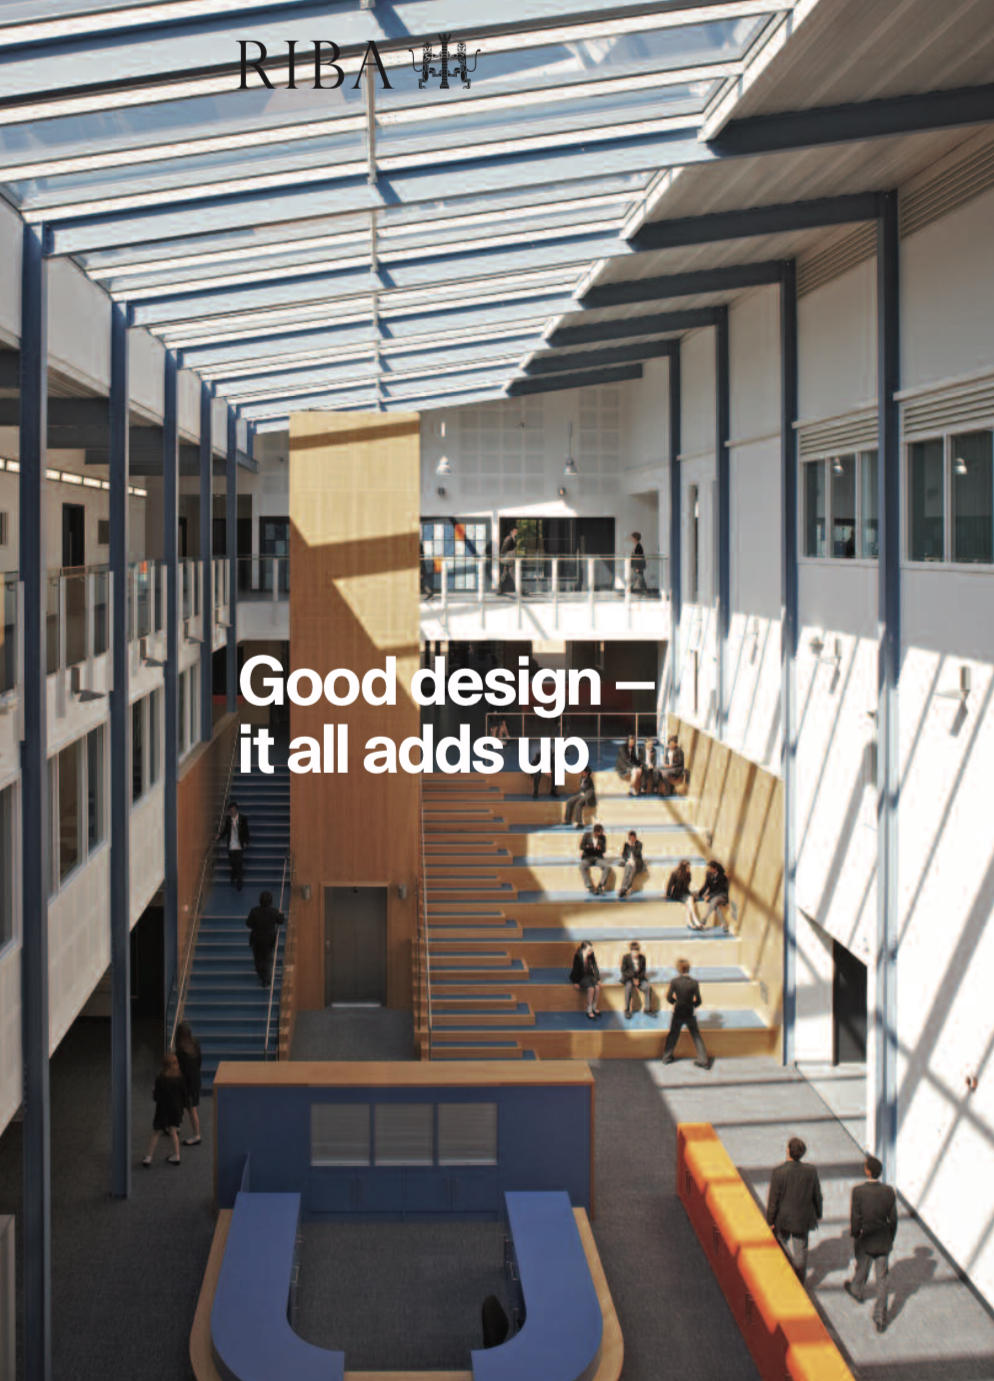 Good design: it all adds up, 2011